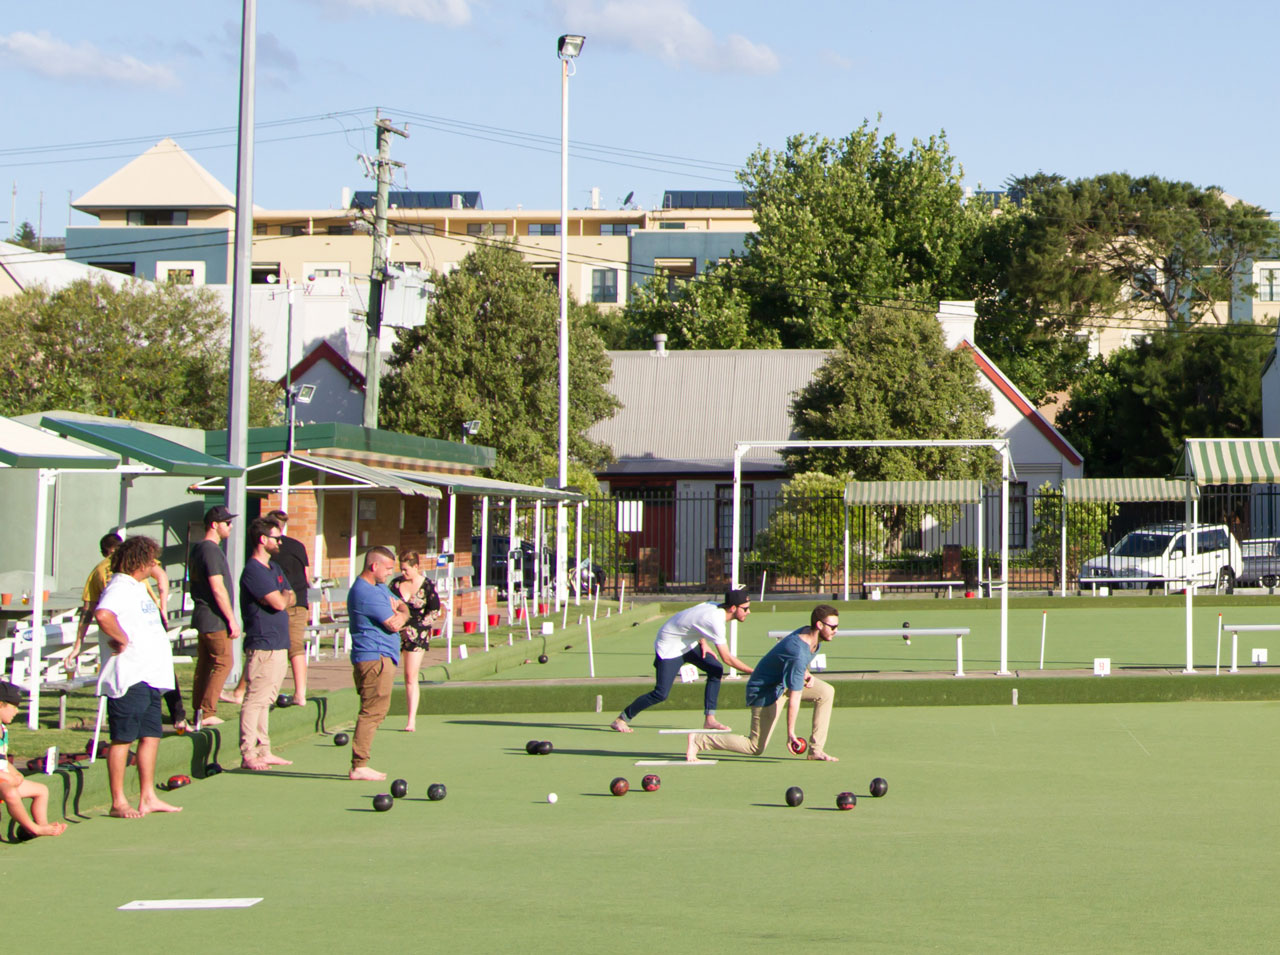 Bowling at Lowlands Bowling Club